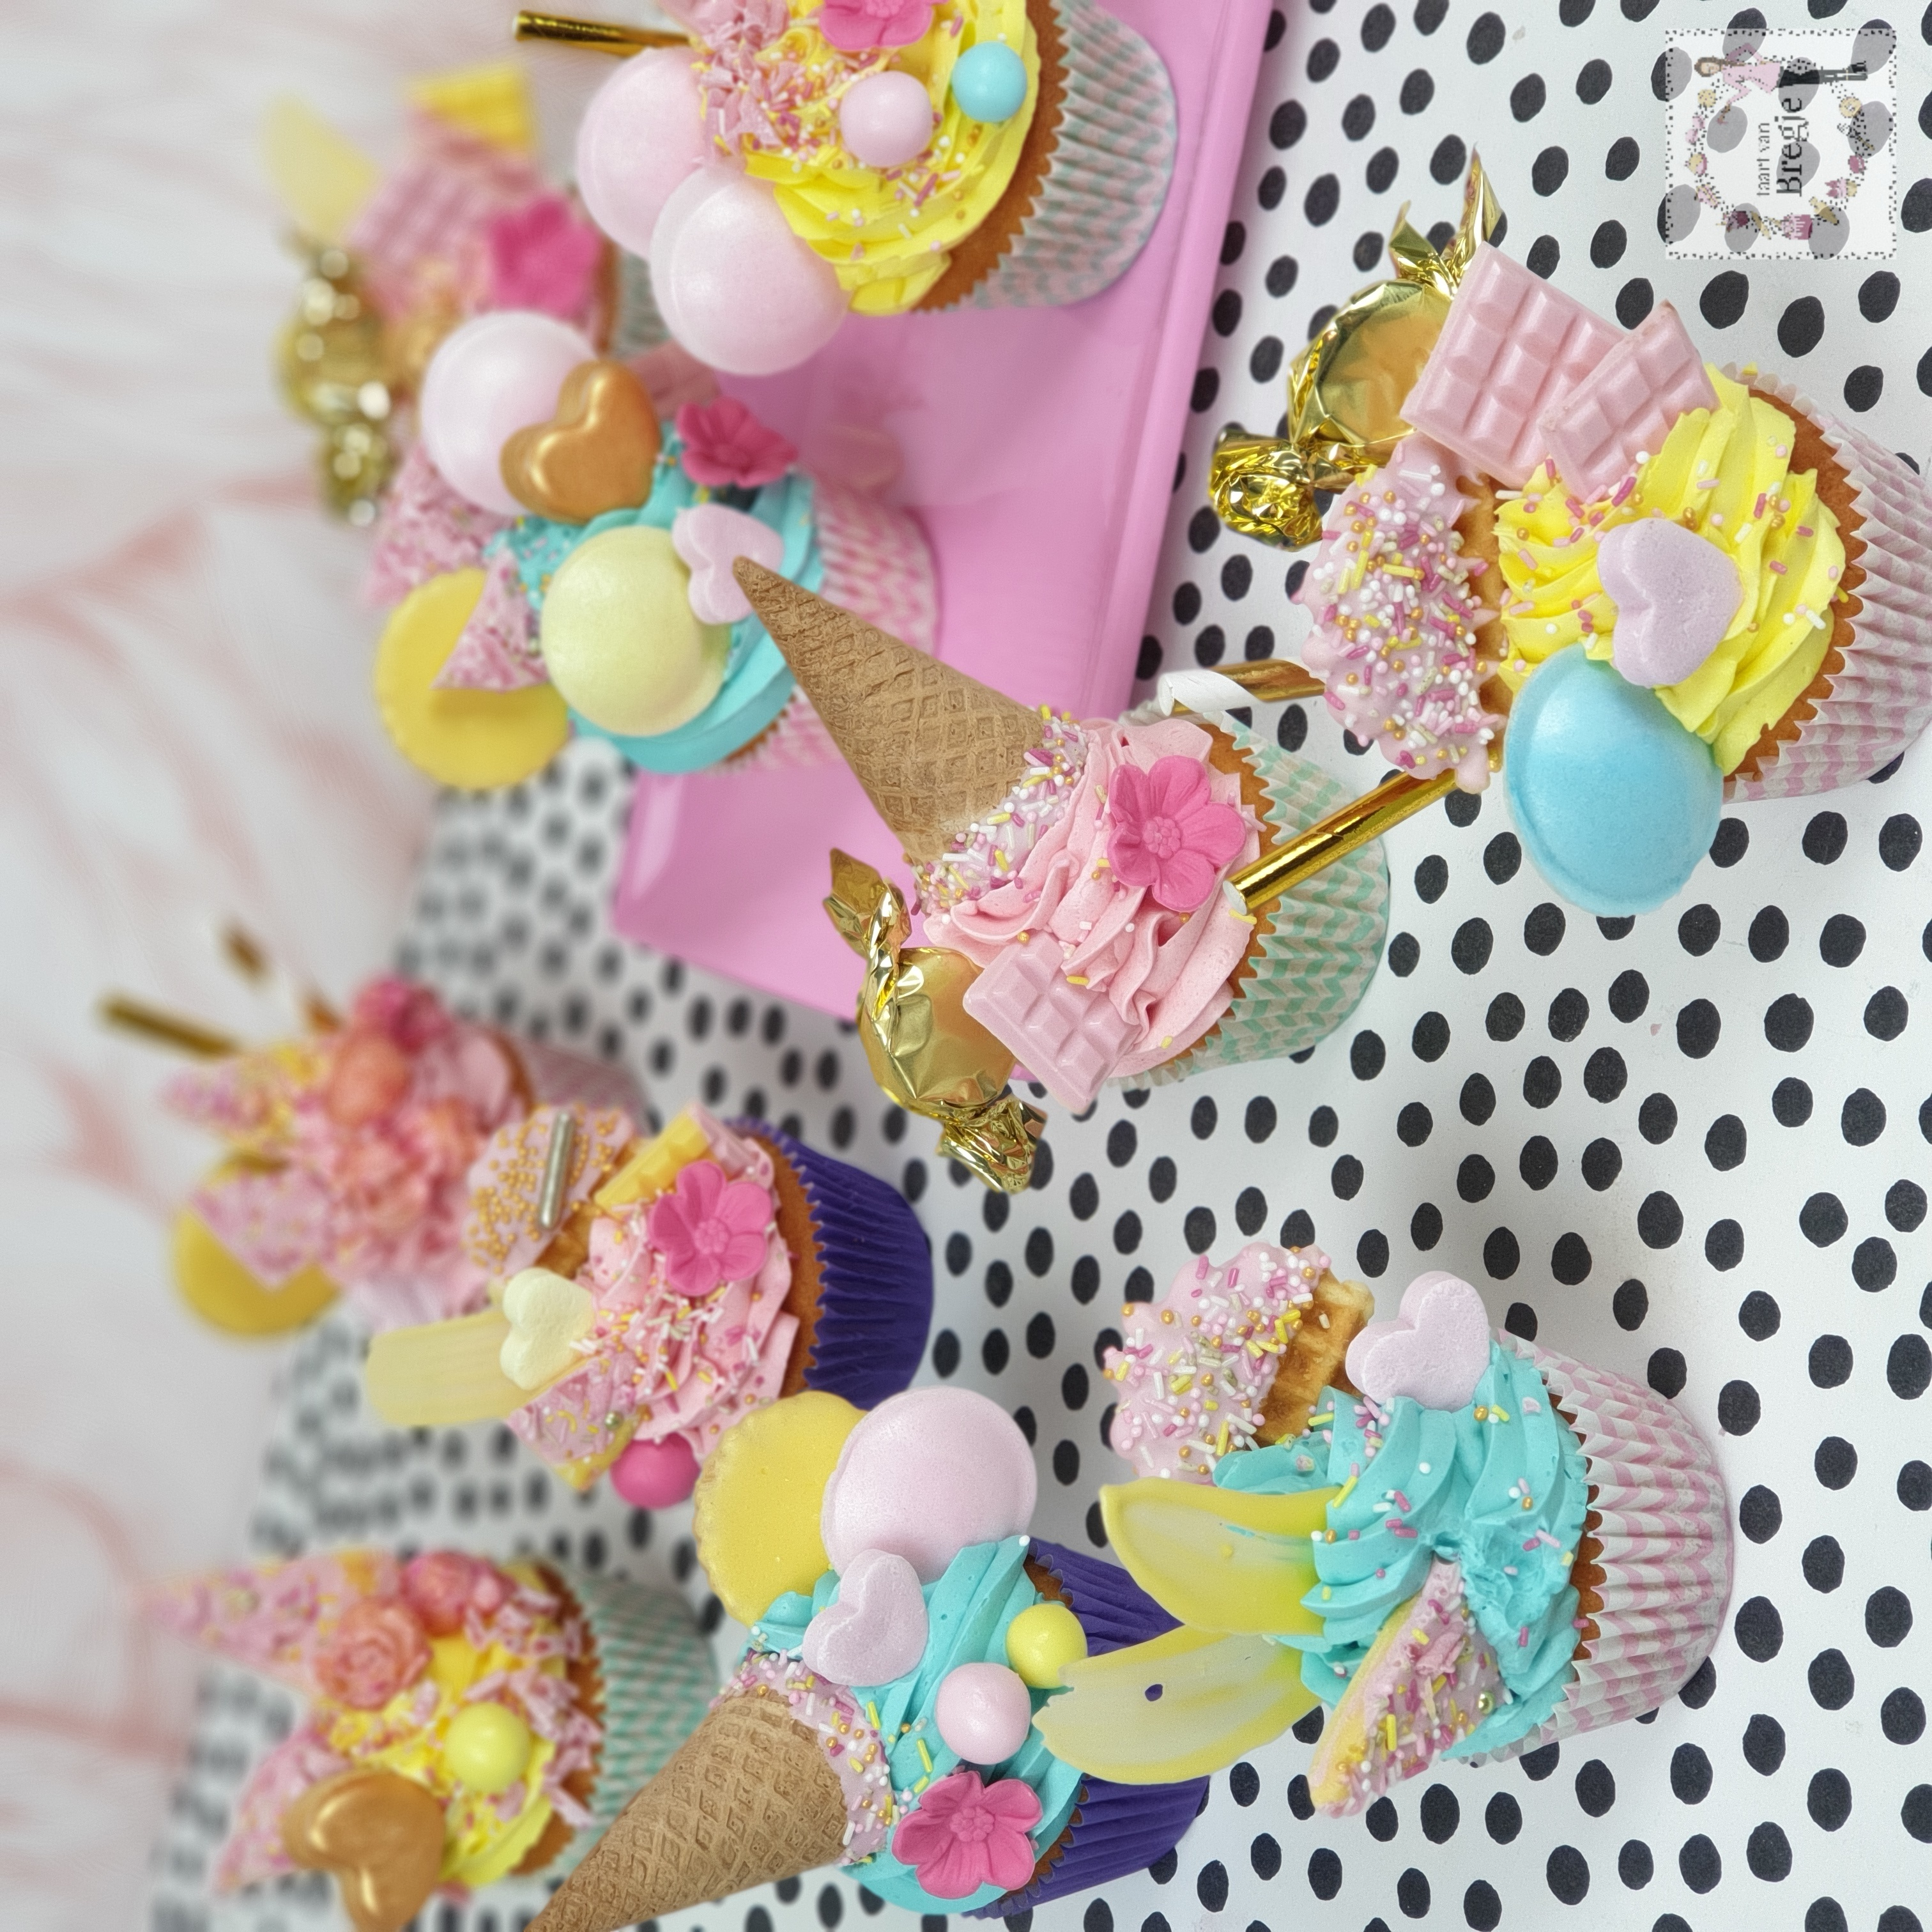 images/CupcakeDeluxe2.jpg